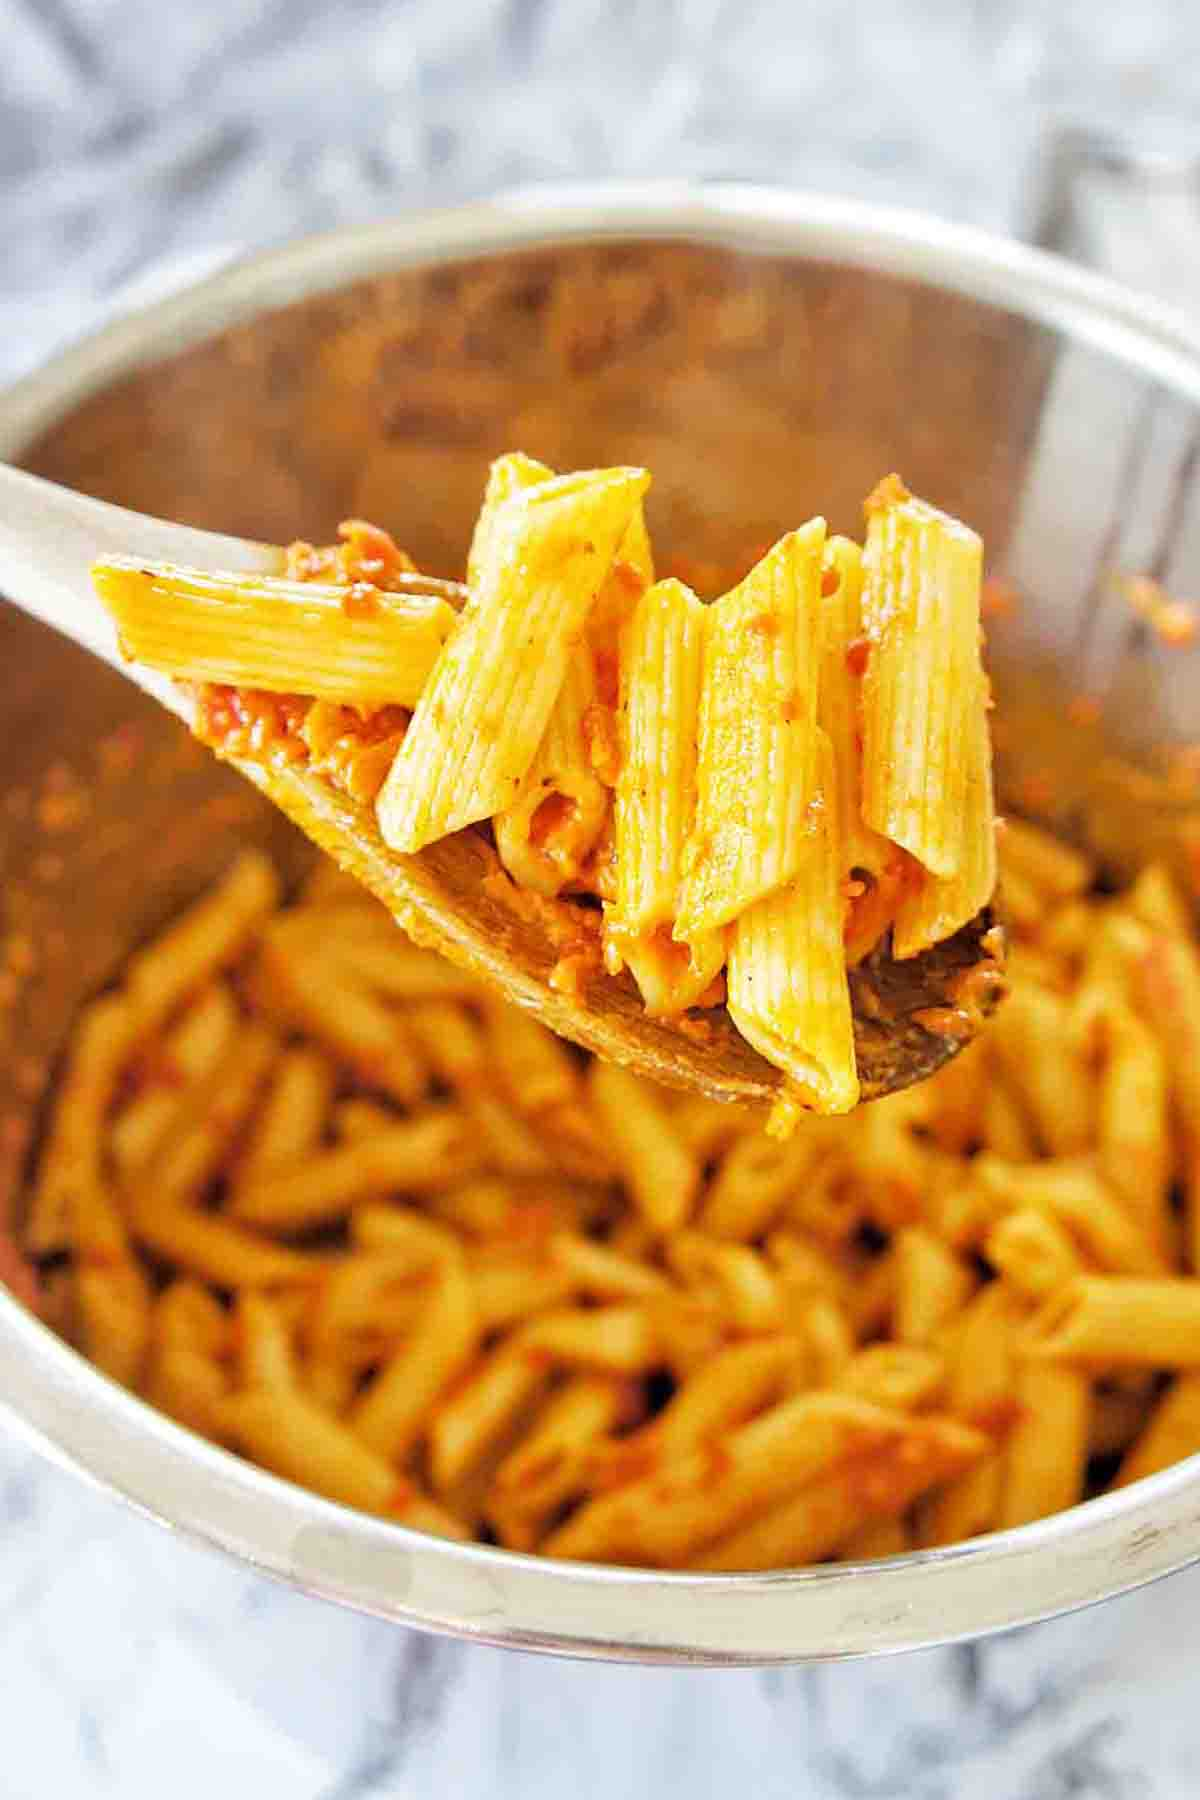 Wooden spoon holding cooked pasta with sauce above an instant pot